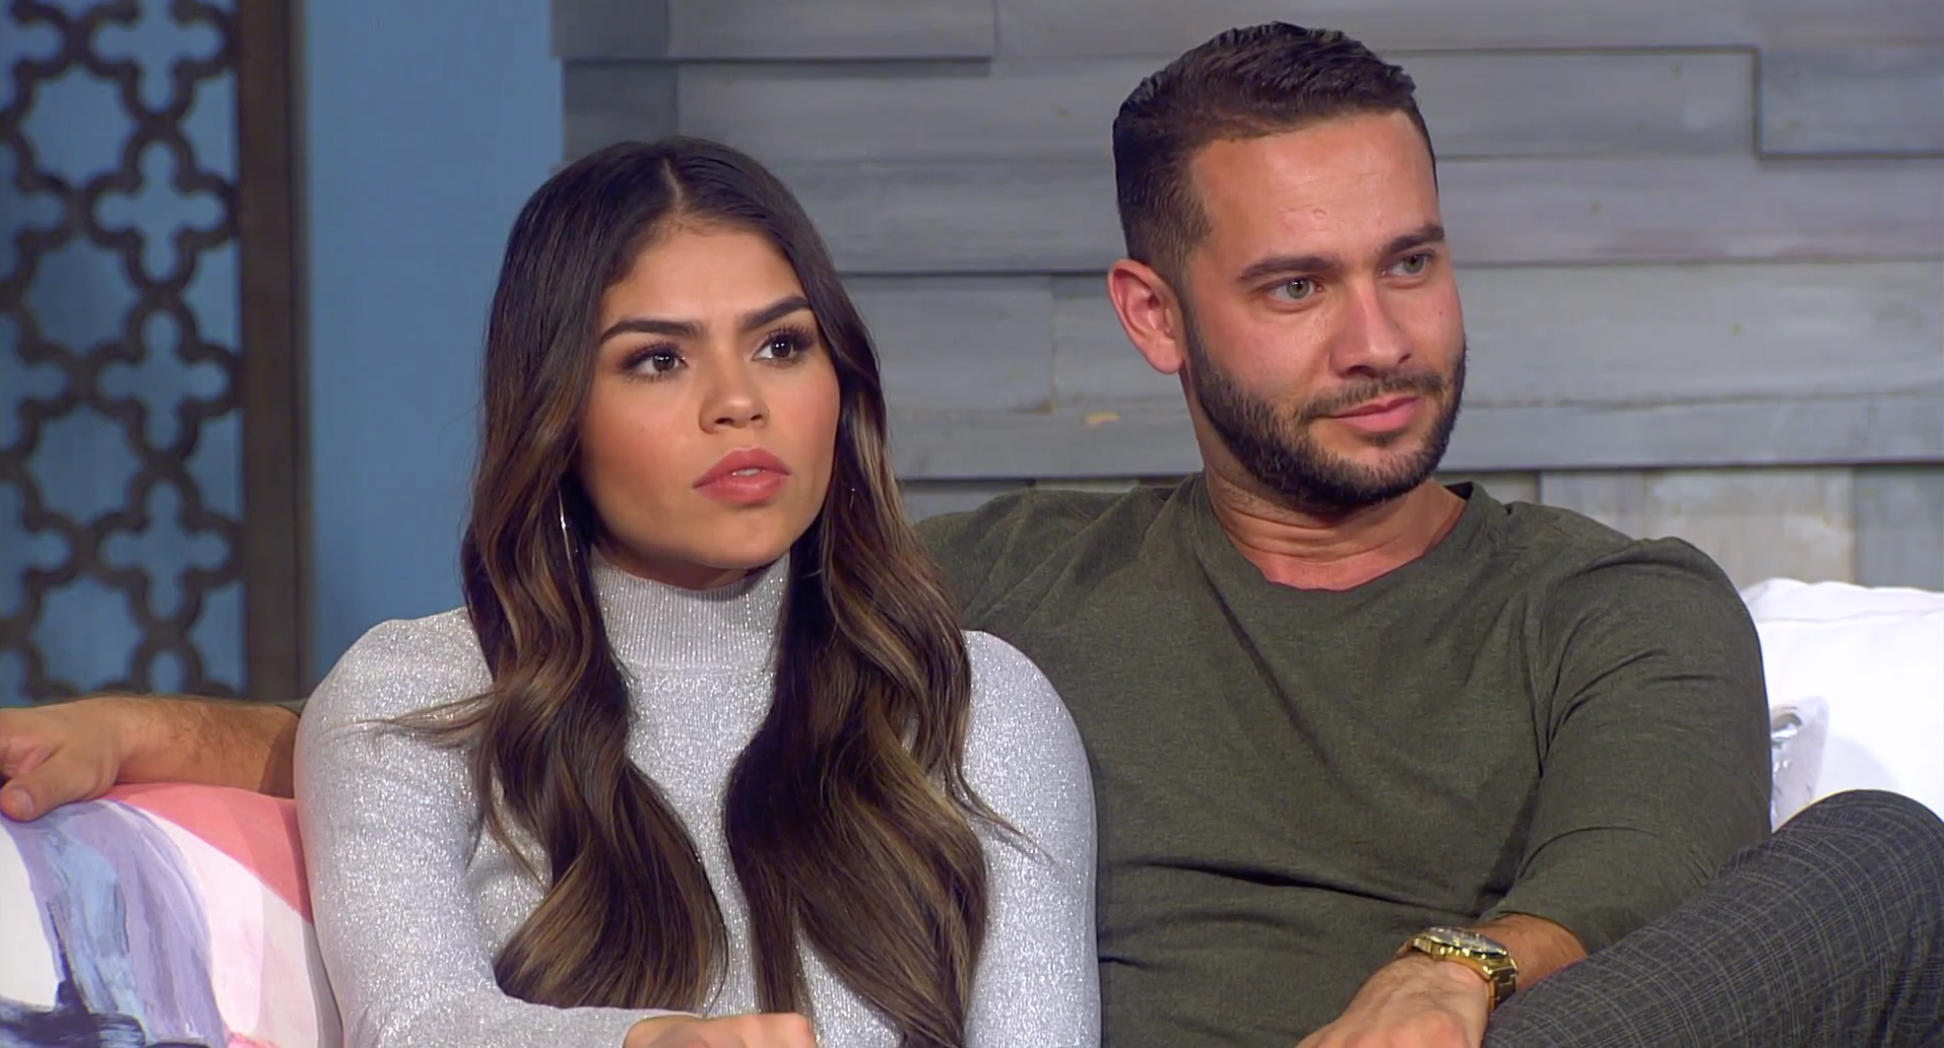 90 Day Fiance': Jonathan Is Friends With Cast After Tell-All